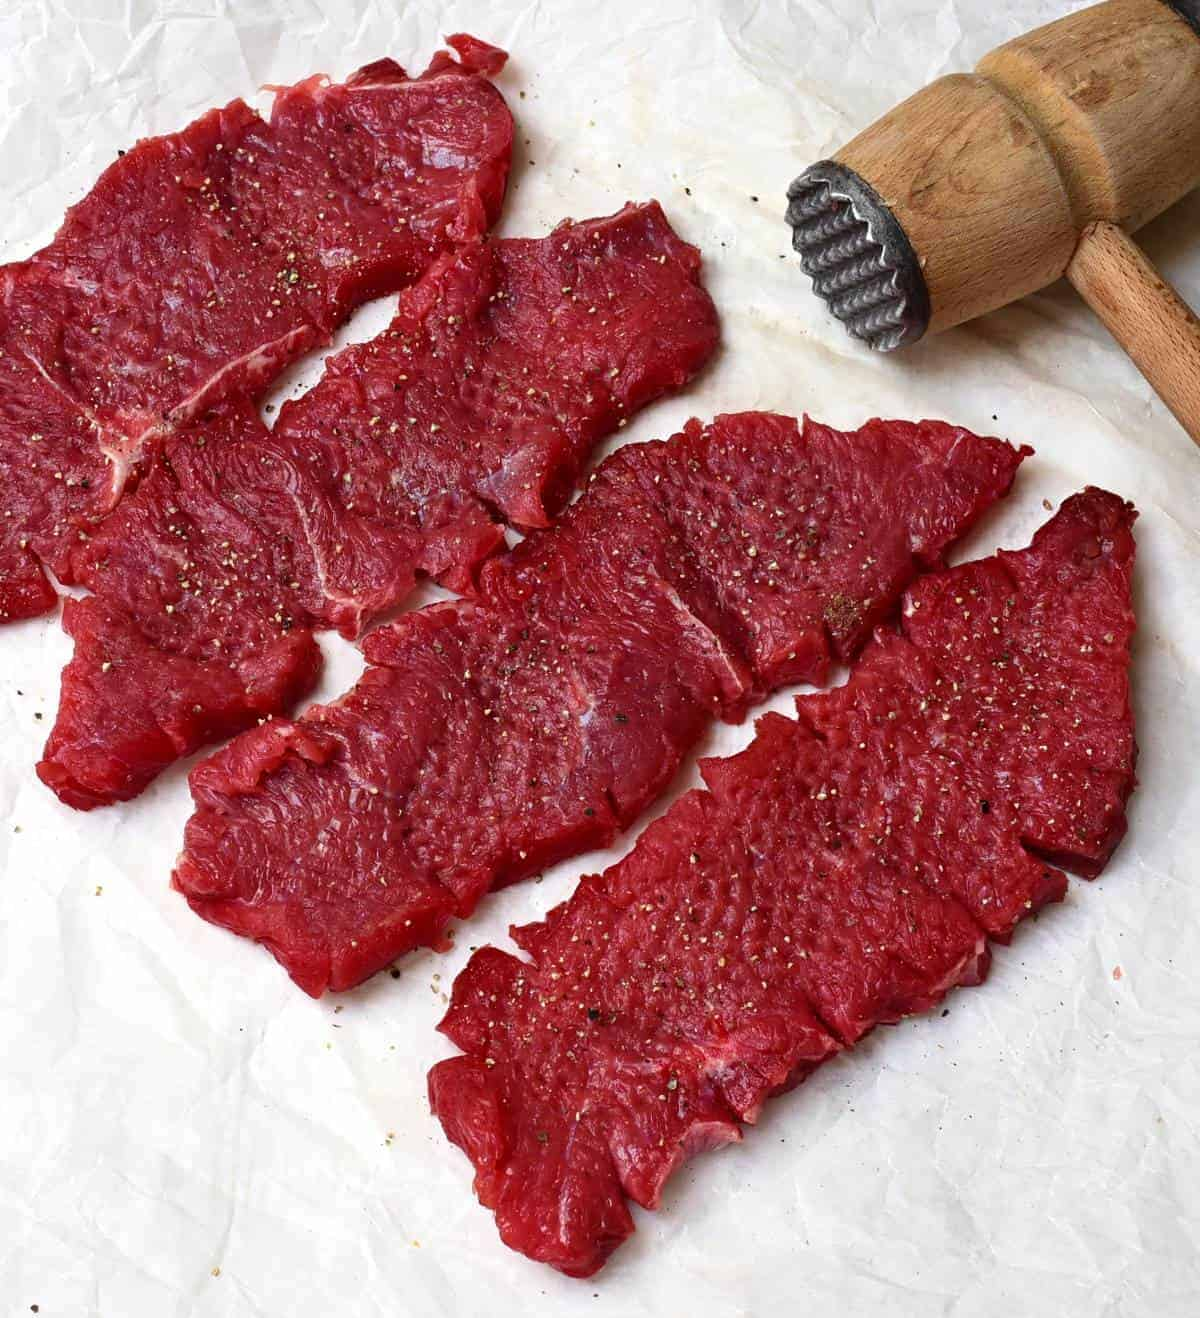 Pound the beef steaks